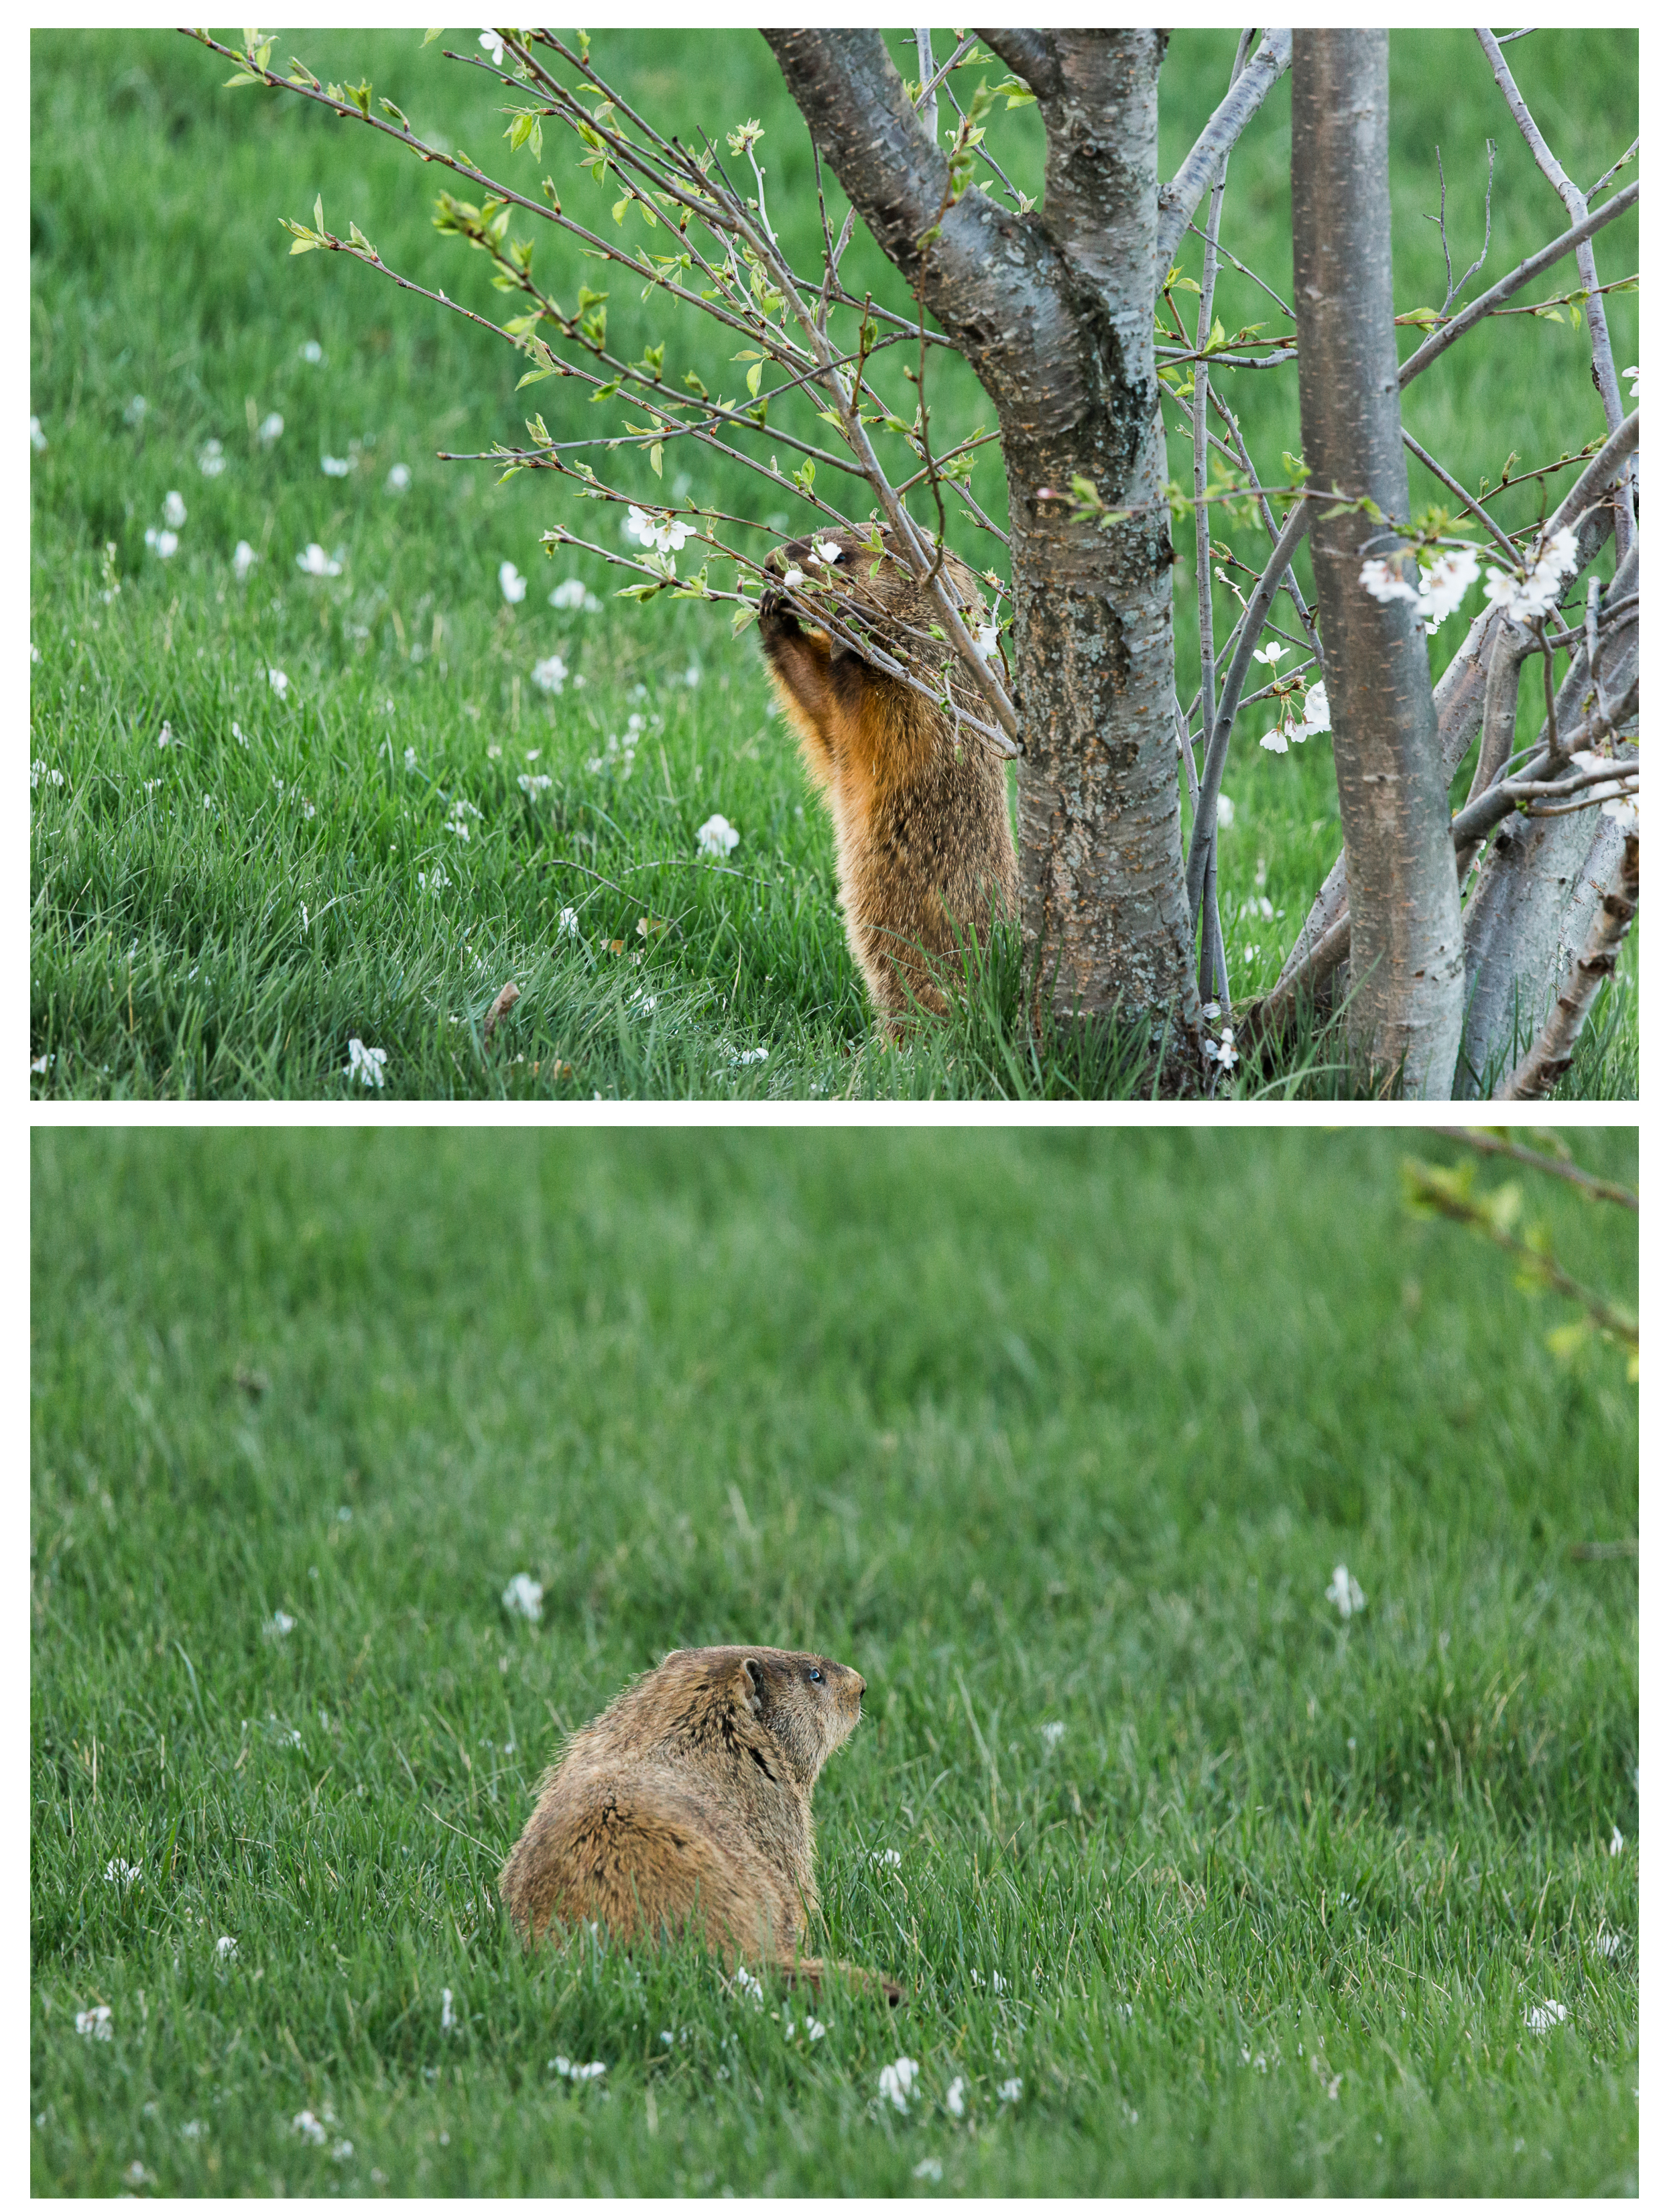 I was excited to see Turbo back visiting Monday evening. I realize that Groundhogs generally are viewed as pests due to their burrowing, but I can't help but love our new visitor. It's wonderful living in a place where we can see wildlife from our own deck.